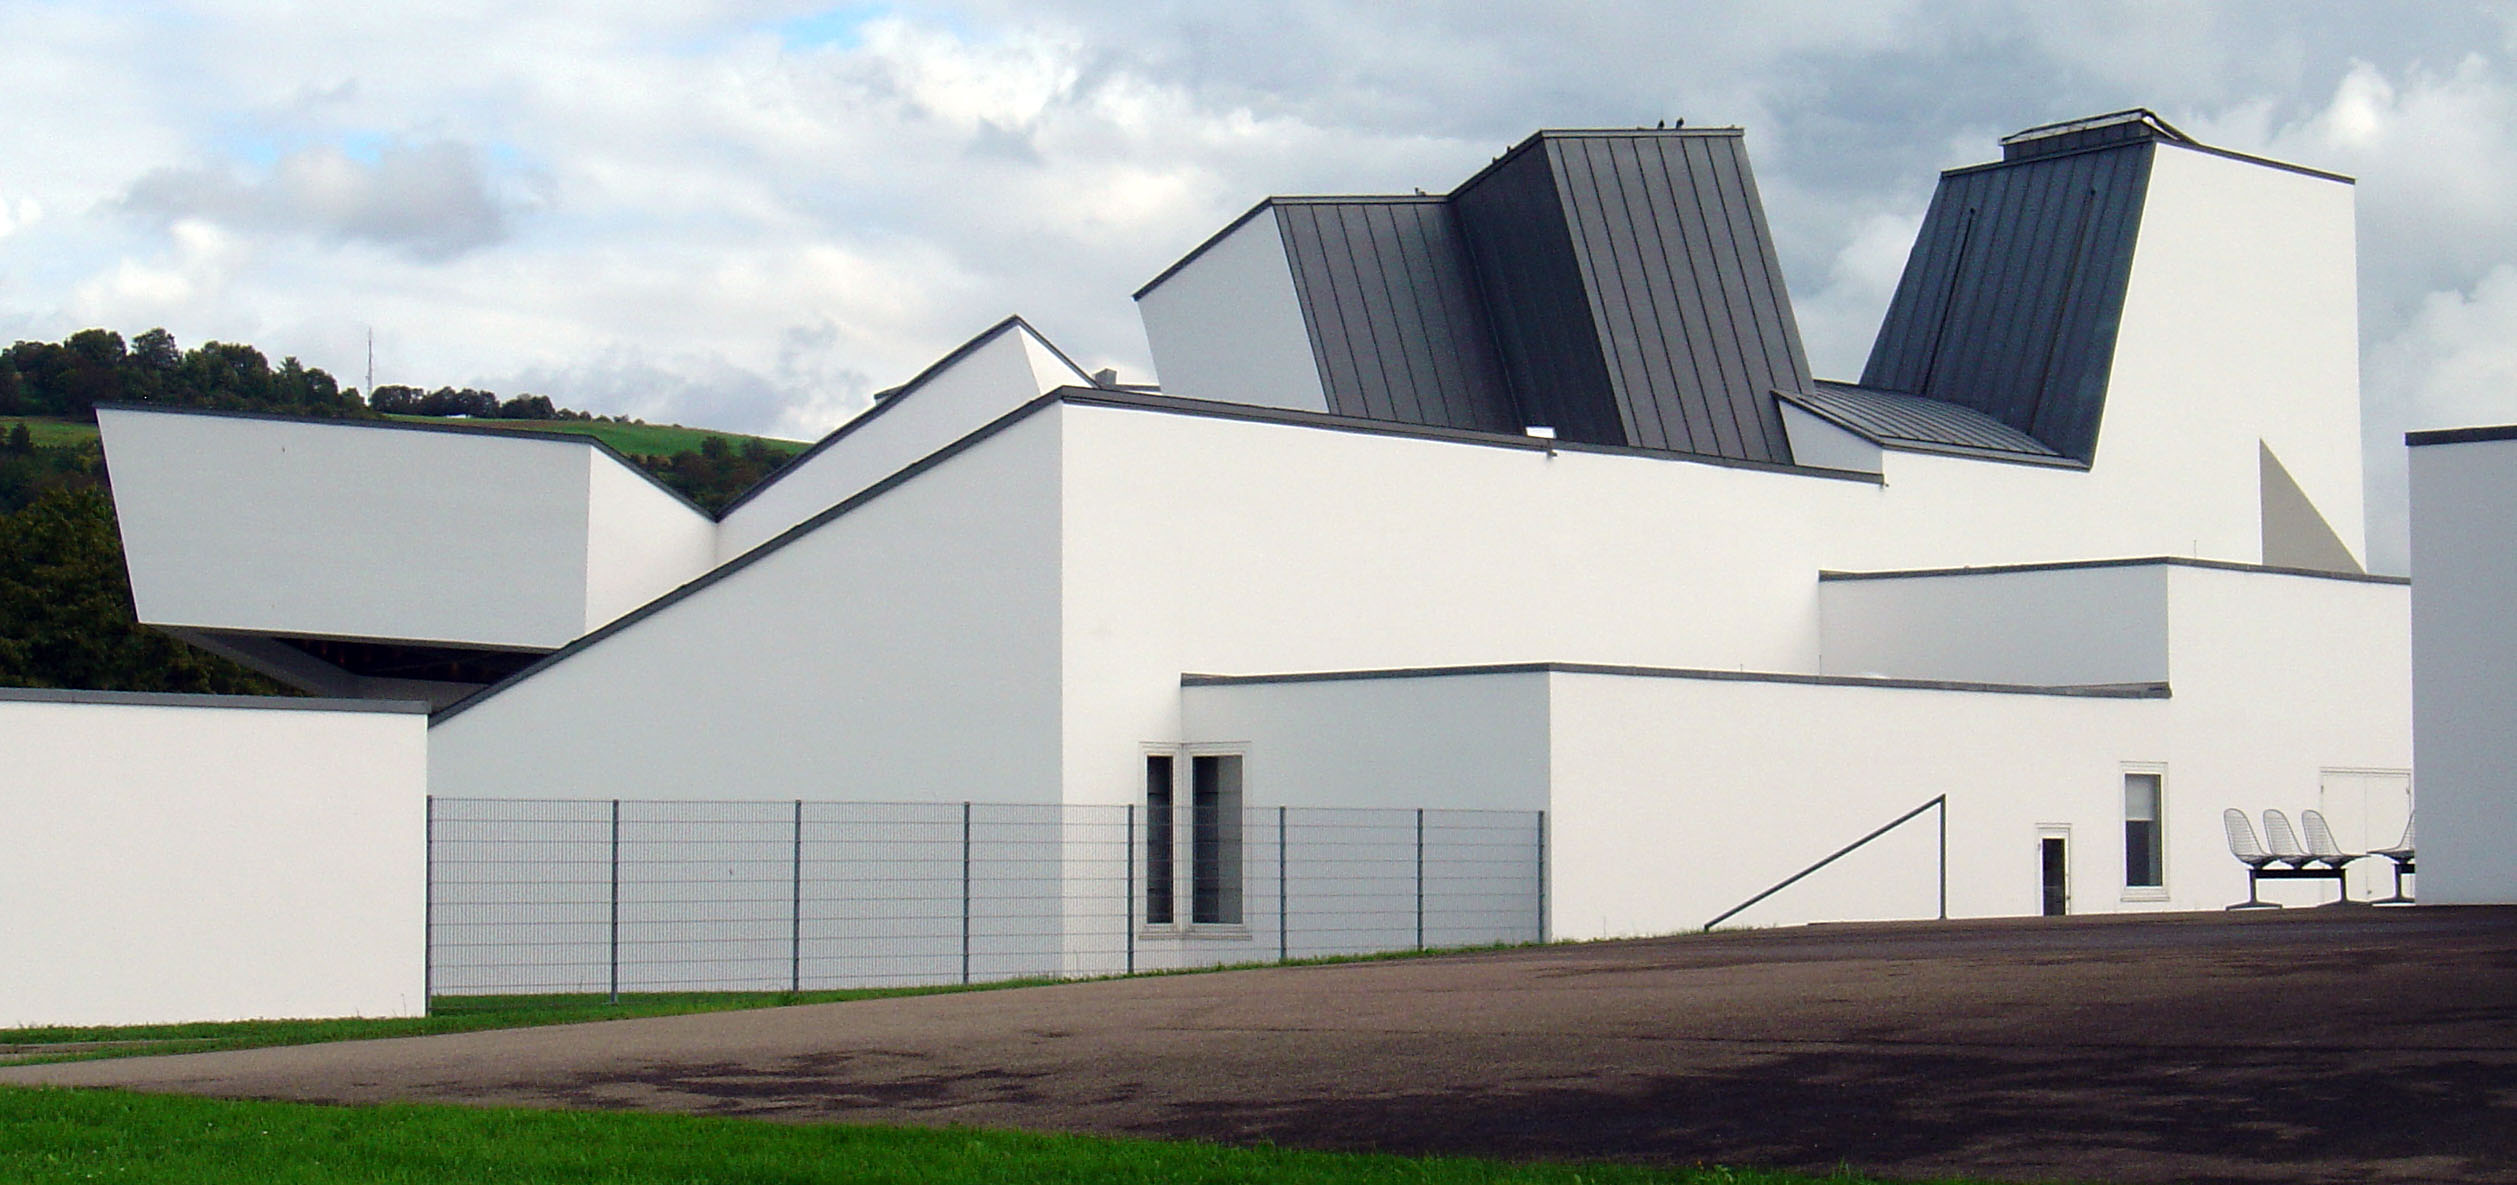 File:Vitra Design Museum, factory side view.jpg ...